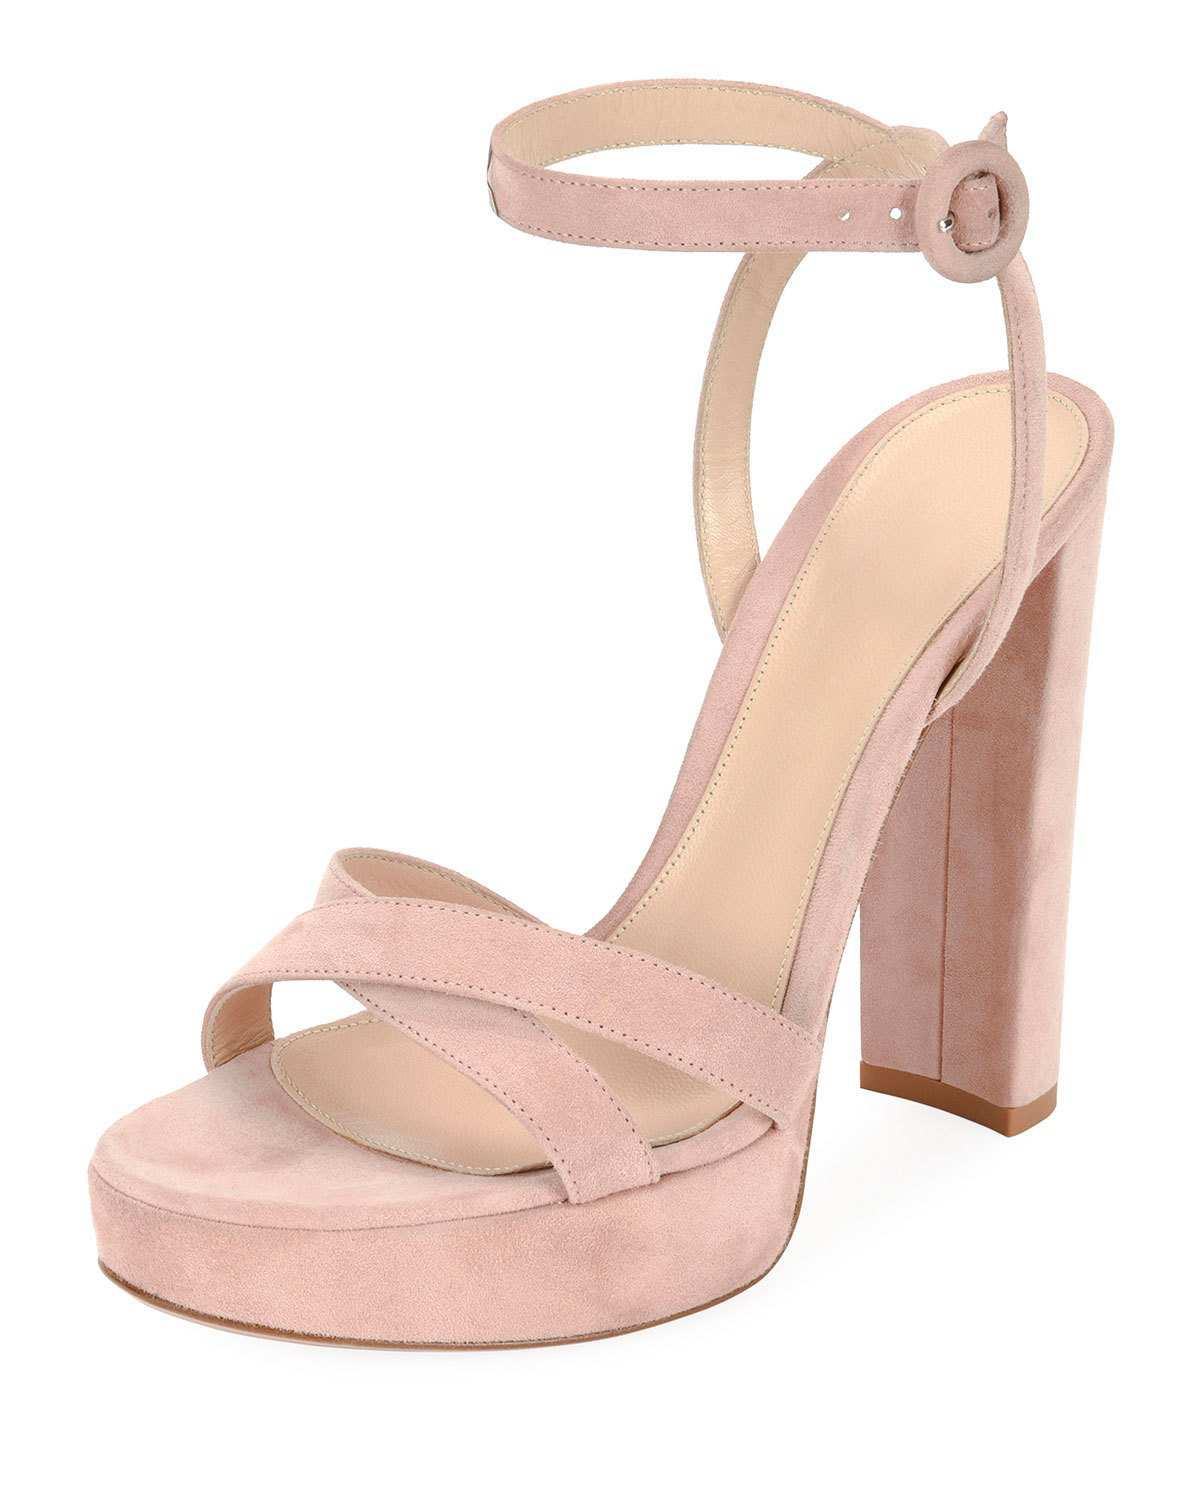 538cf584b0a66 Made in Italy. Gianvito Rossi Women s Suede Platform Sandals - Pink Size  8.5 A great designer gift. Shop Gianvito Rossi at Barneys New York.